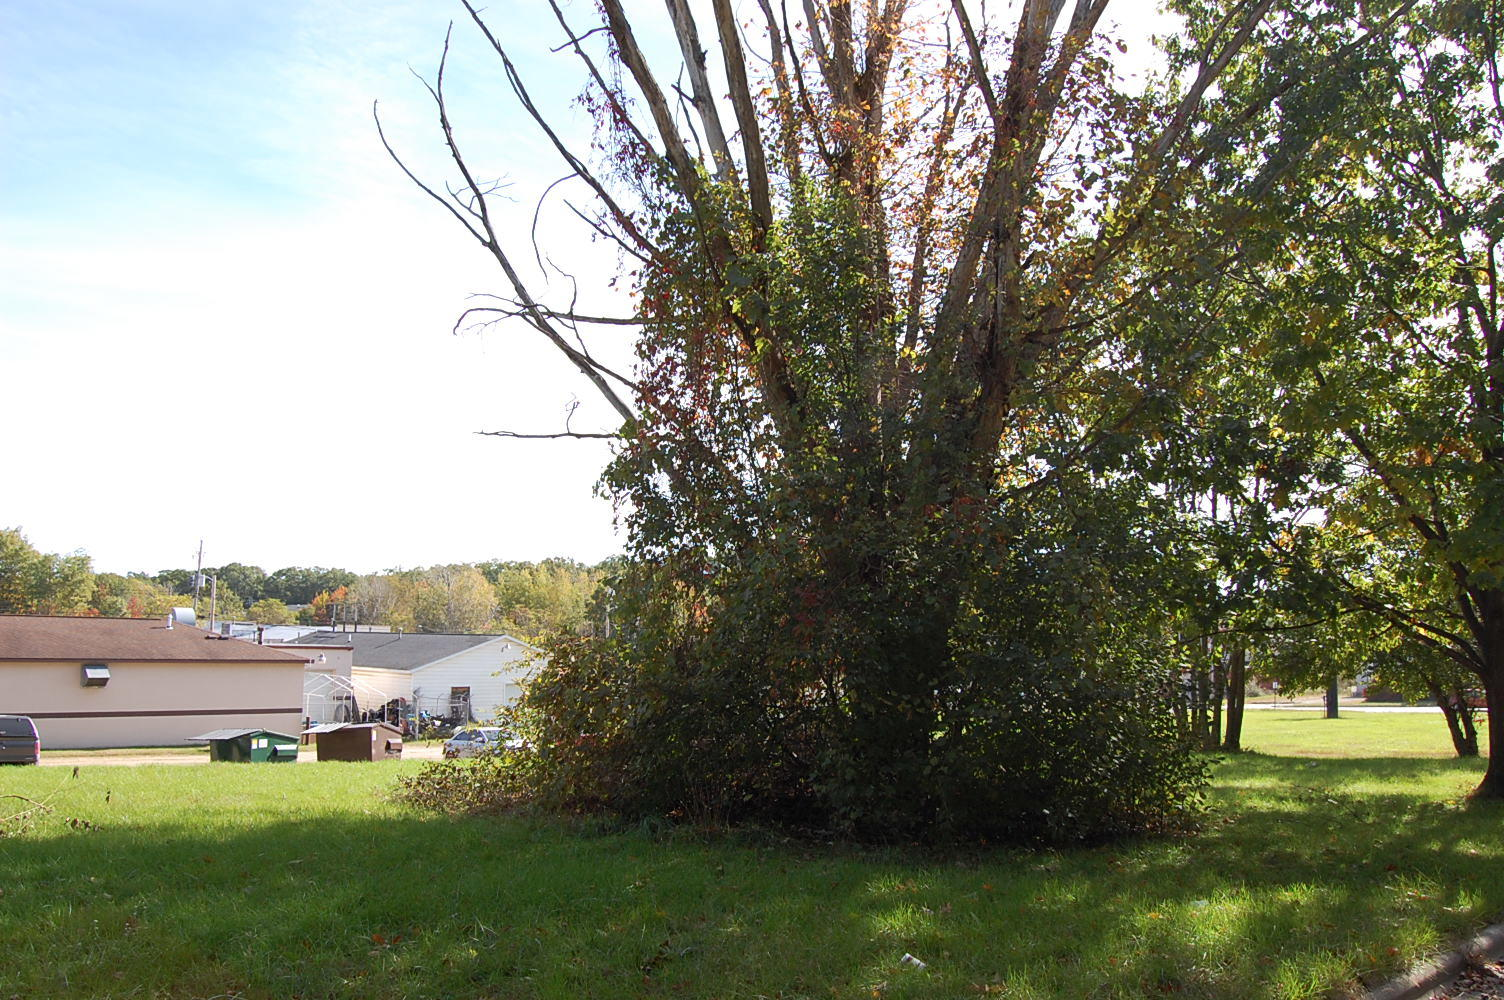 Invest in Your Dream Business With This Michigan Commercial Parcel - Image 4